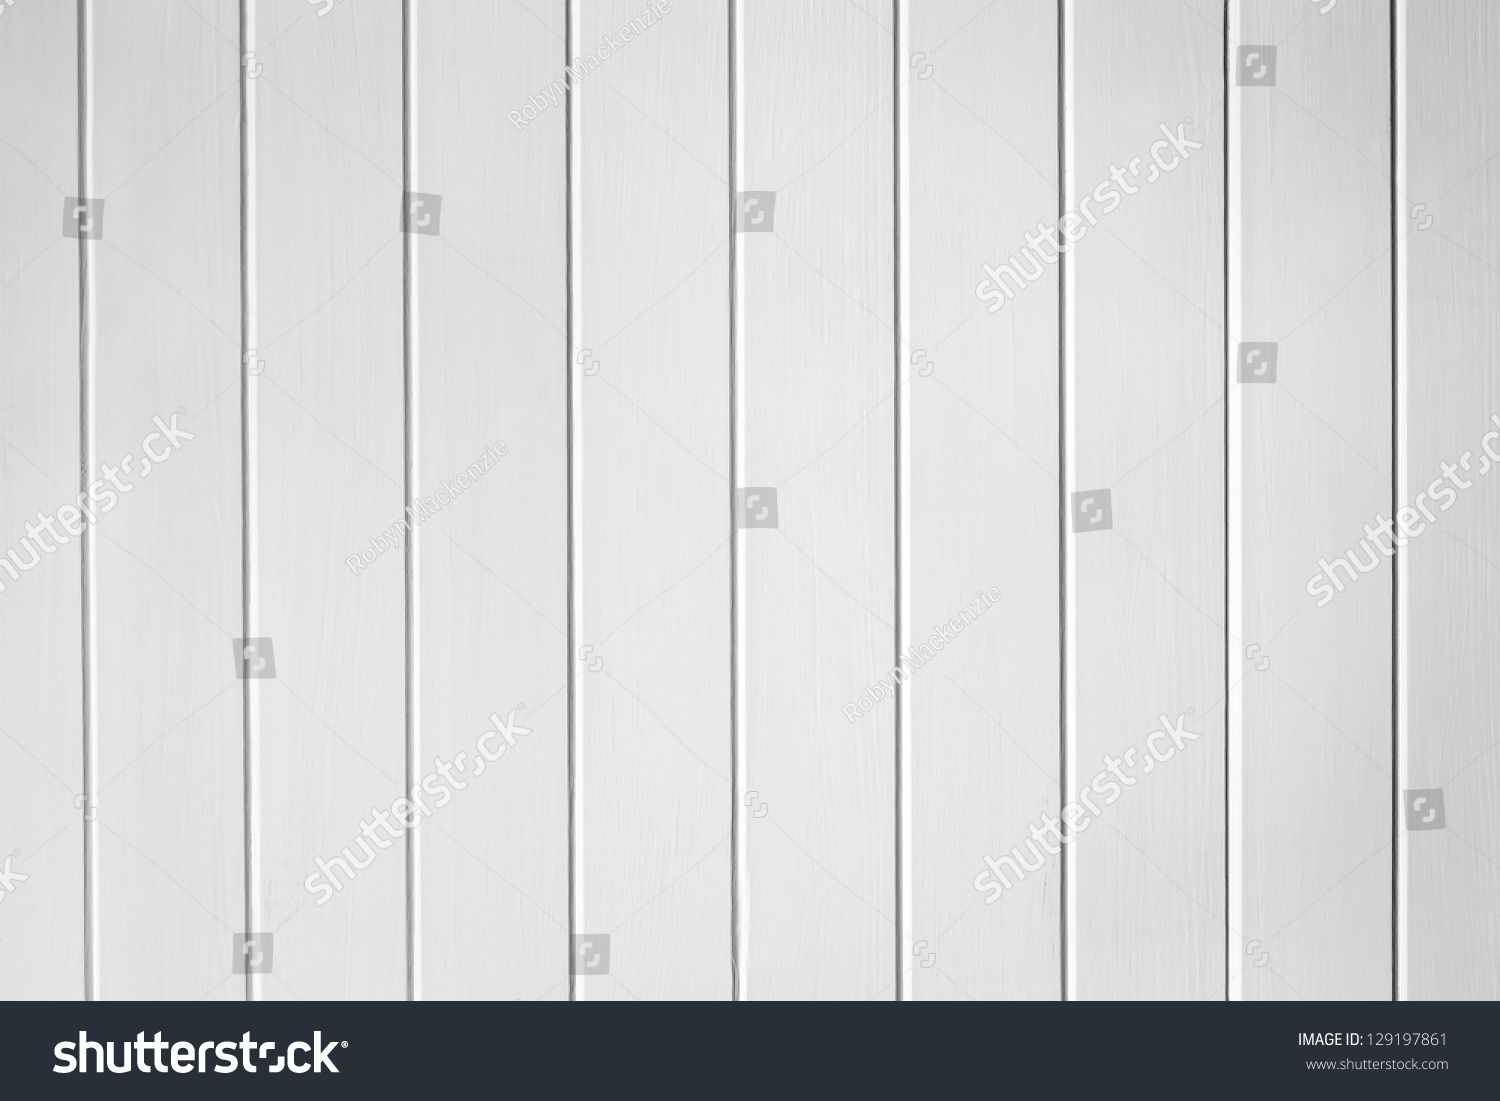 White wood panel paneling panelling texture stock photo for Wood paneling painted white